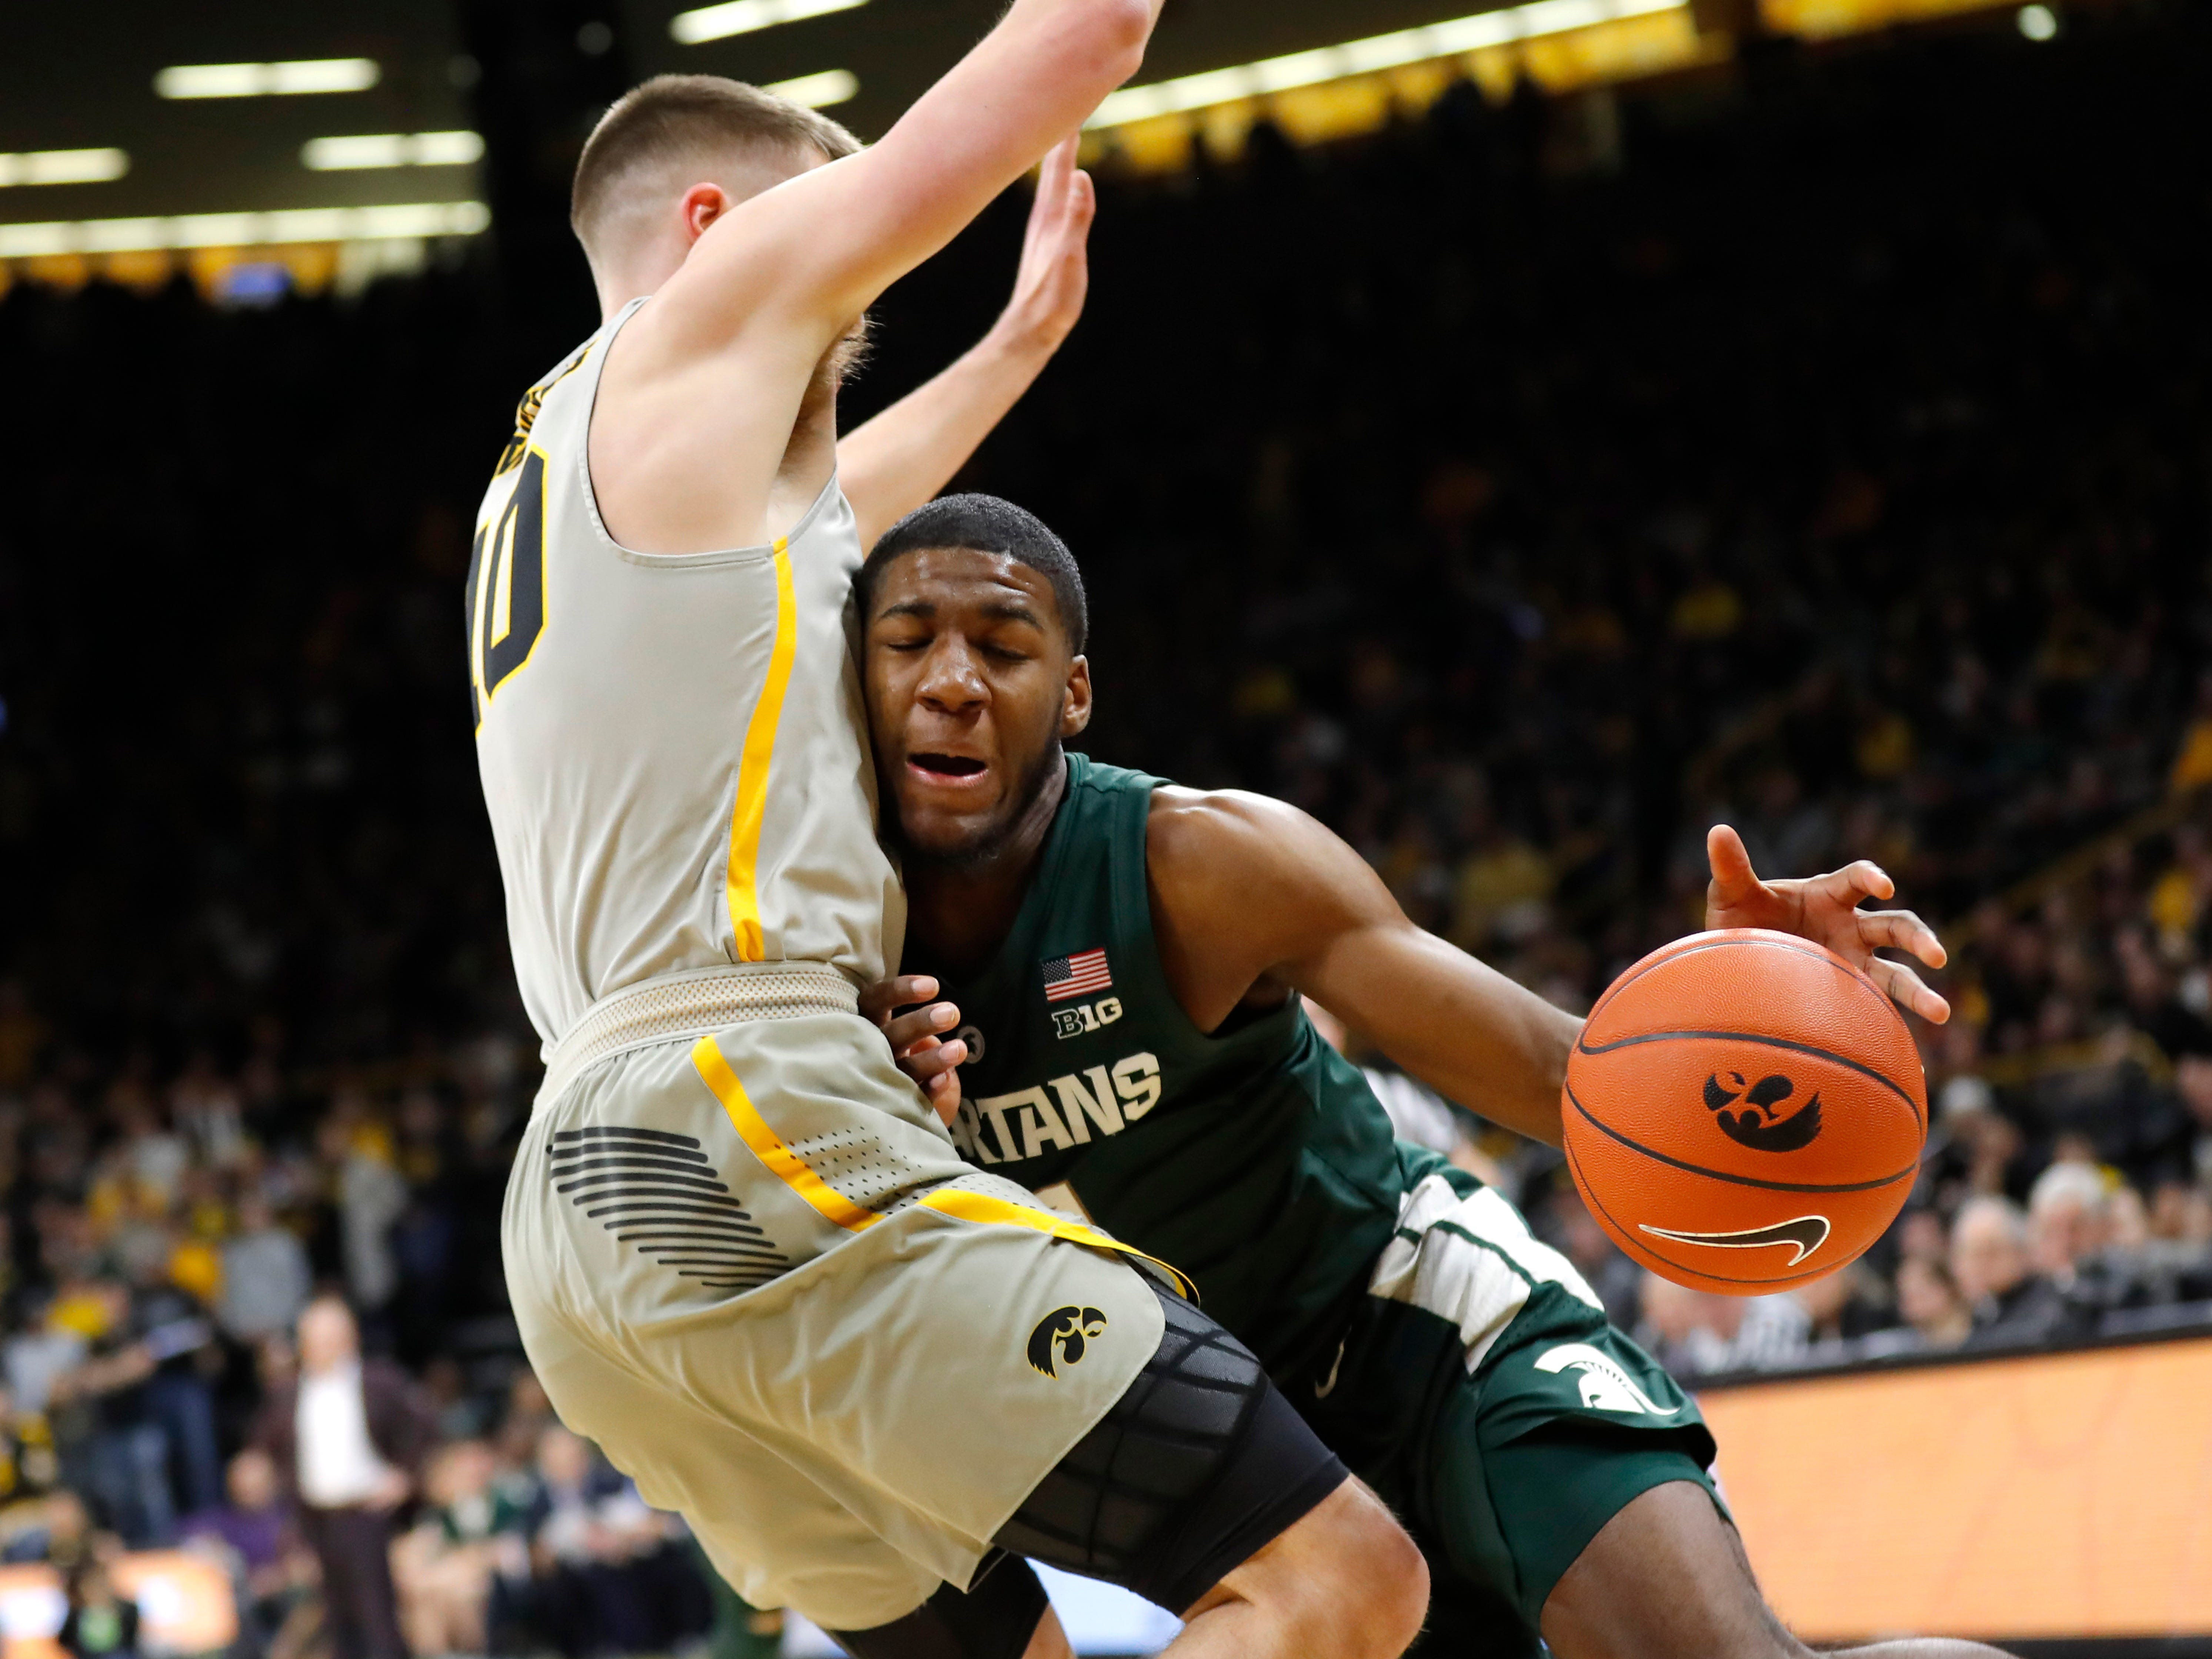 Michigan State forward Aaron Henry, right, tries to drive around Iowa guard Joe Wieskamp during the first half of an NCAA college basketball game Thursday, Jan. 24, 2019, in Iowa City, Iowa.